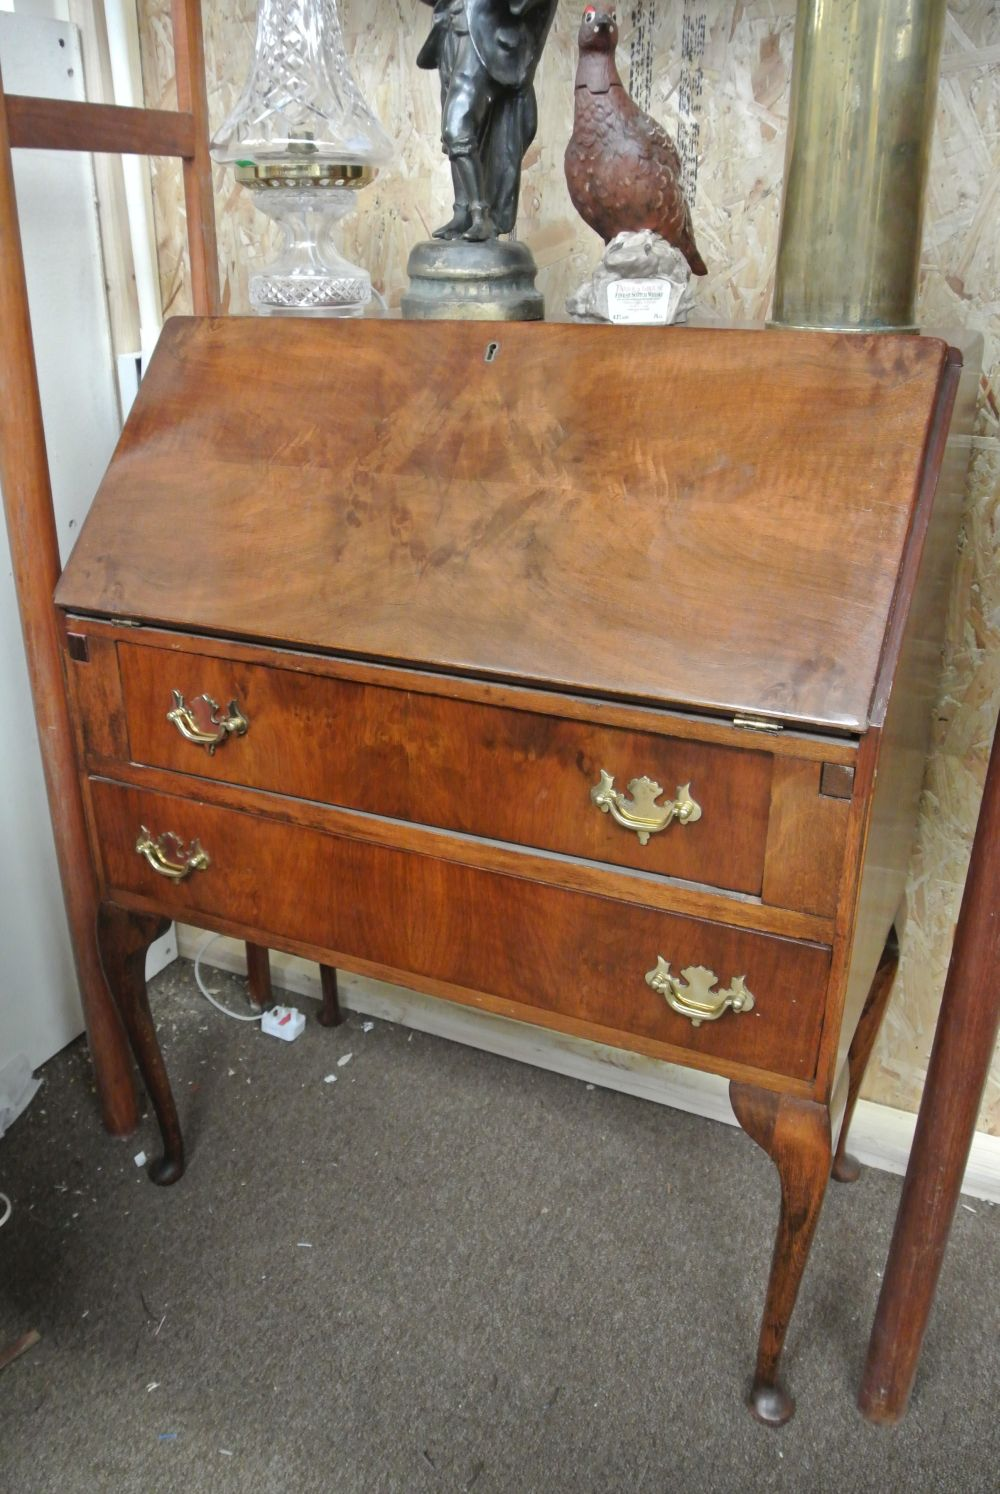 An antique writing bureau on cabriole legs with brass hardware.